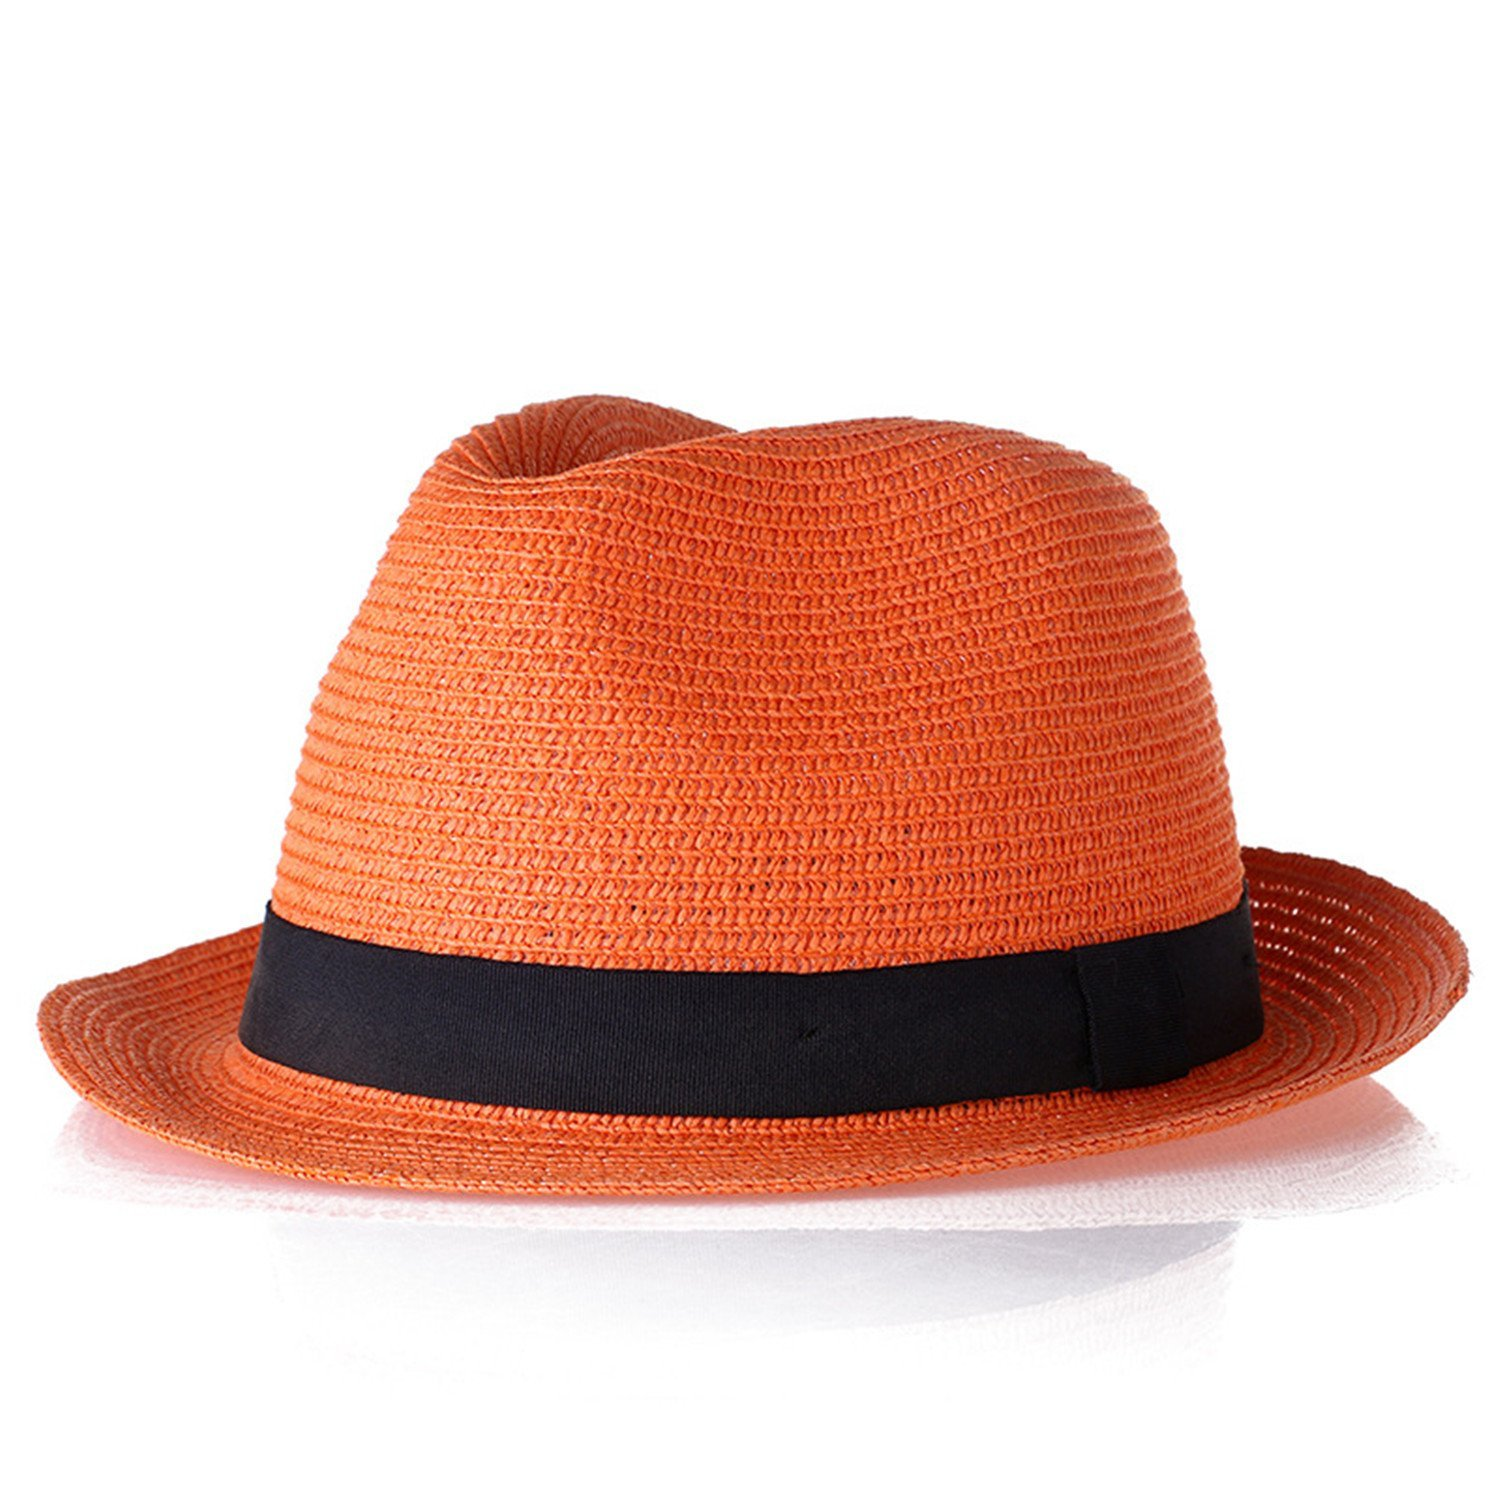 be6072c9aef Get Quotations · Miki Da Women Hat For Men Hat Ladies Summer Beach Cap Sun  Hat Female Panama Straw